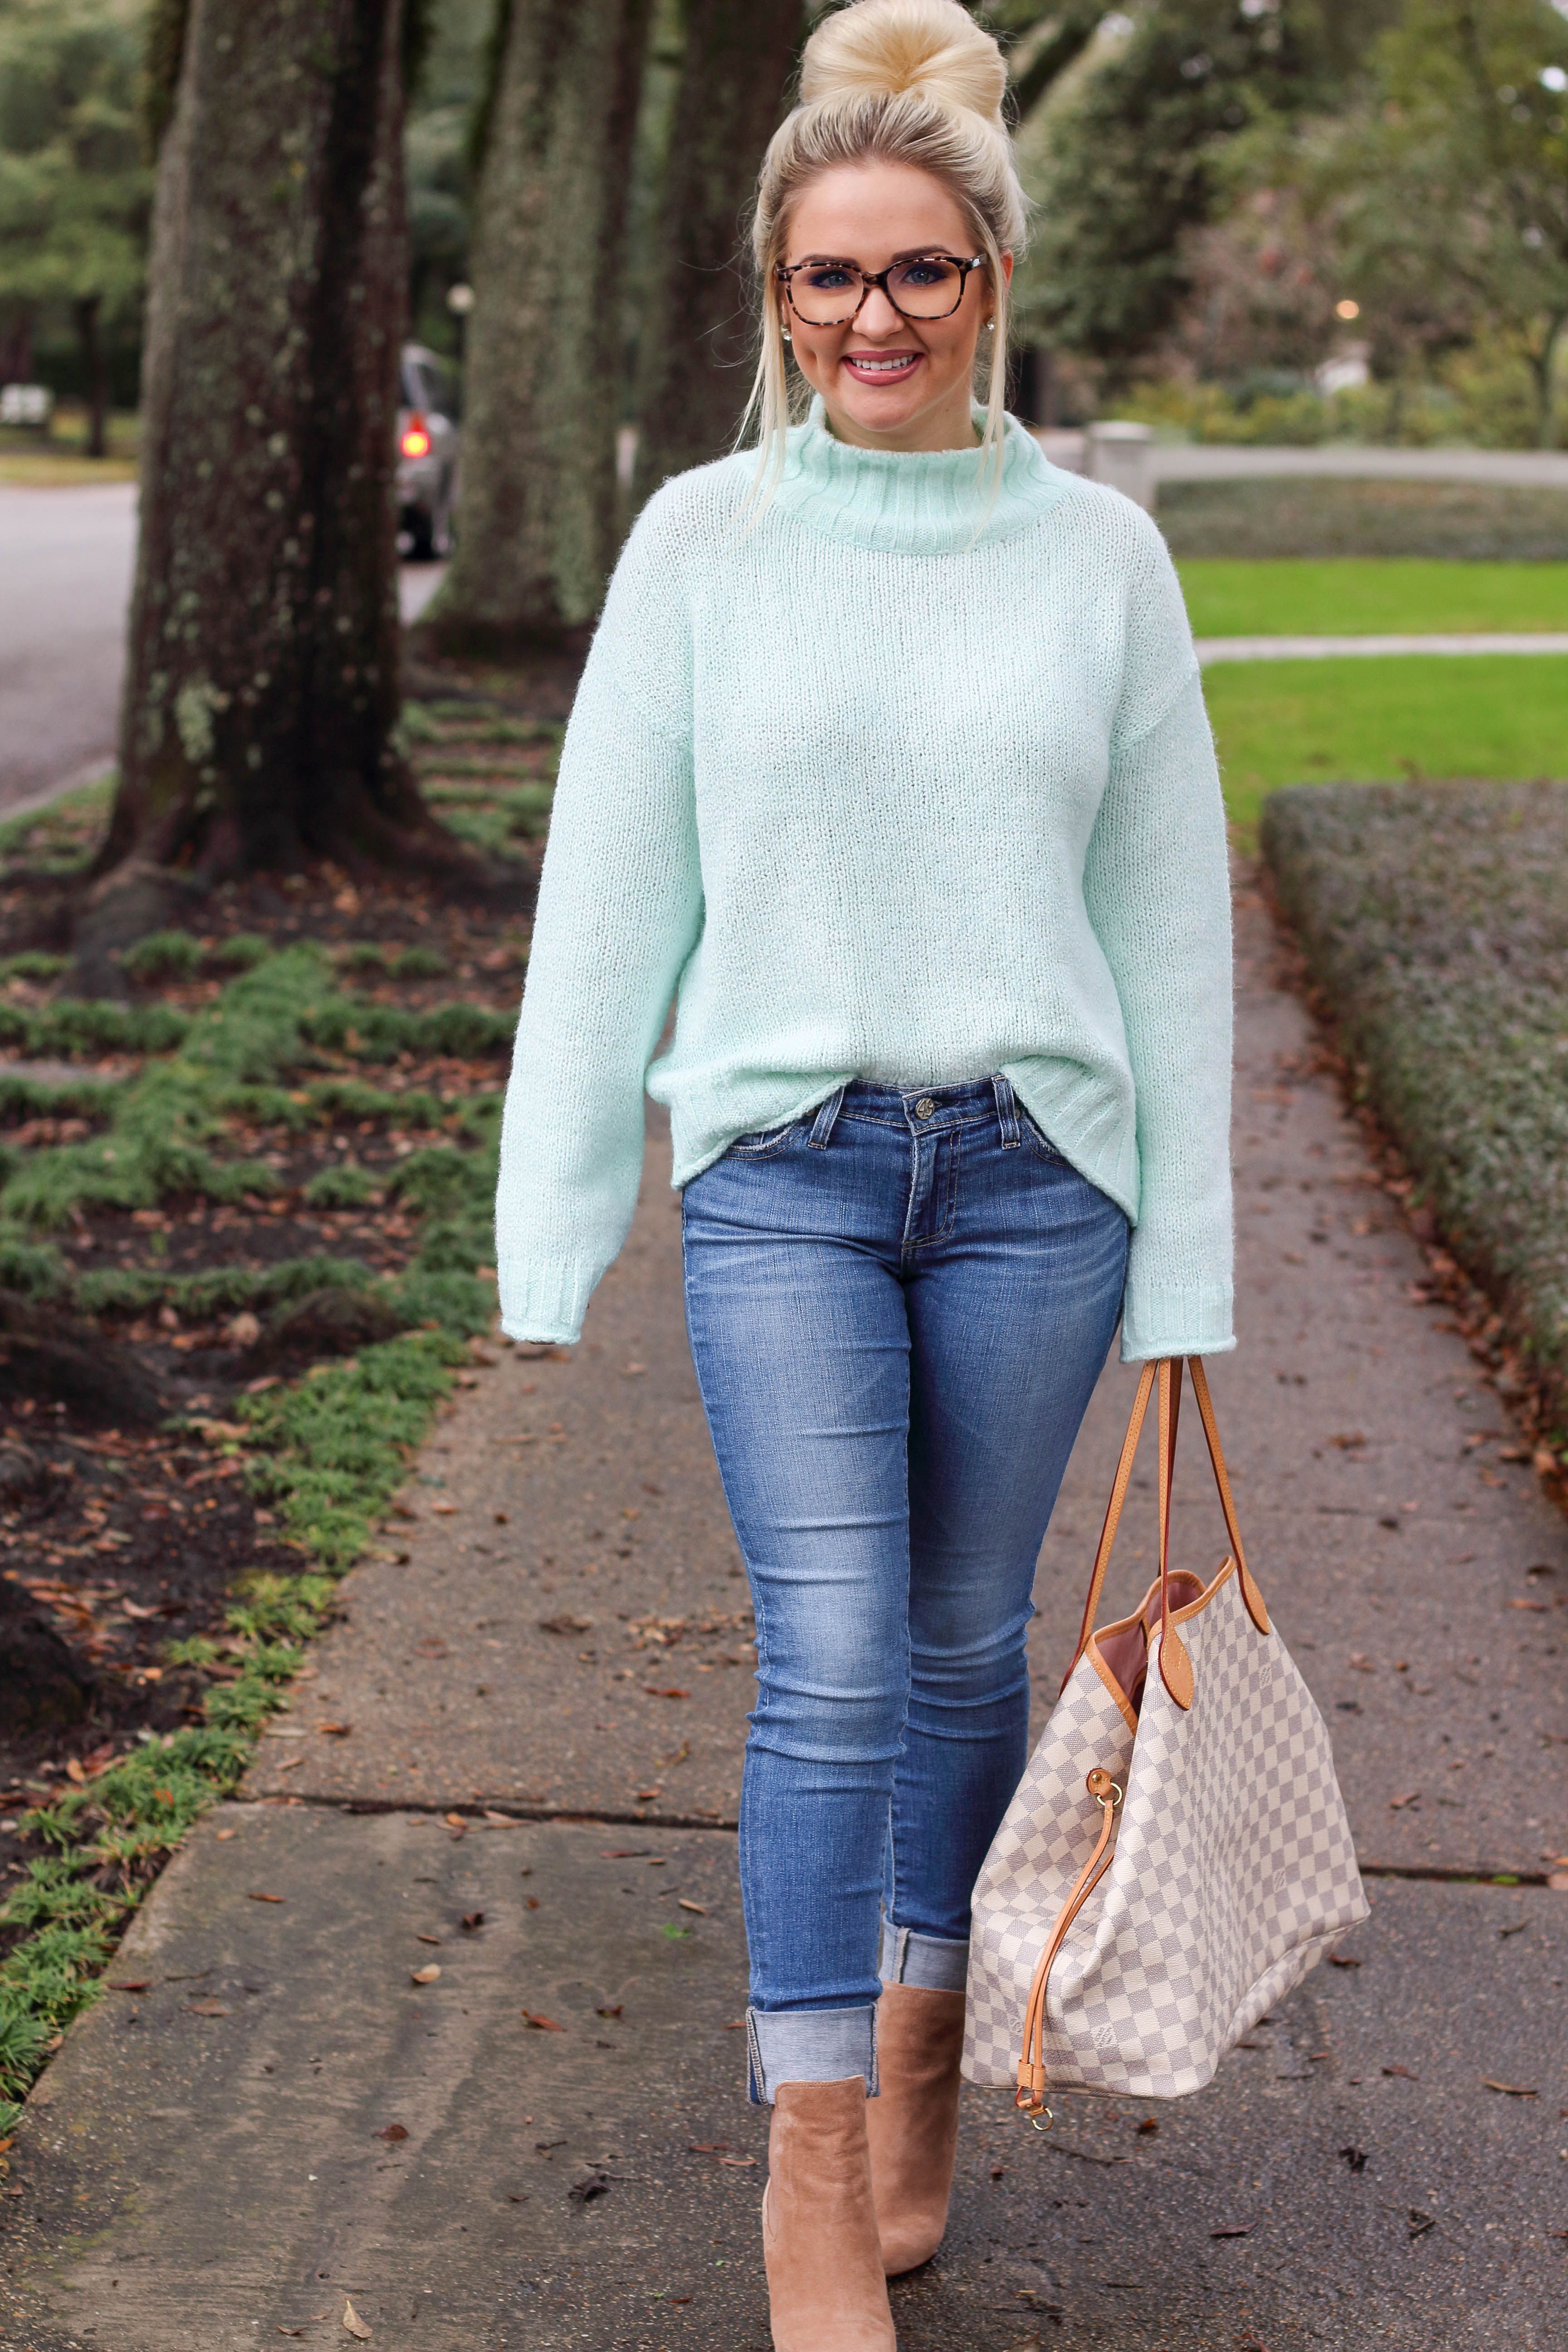 7340d6b71 Sassy Southern Blonde - A Style Blog with a Southern Twist by Kelsie Bynum